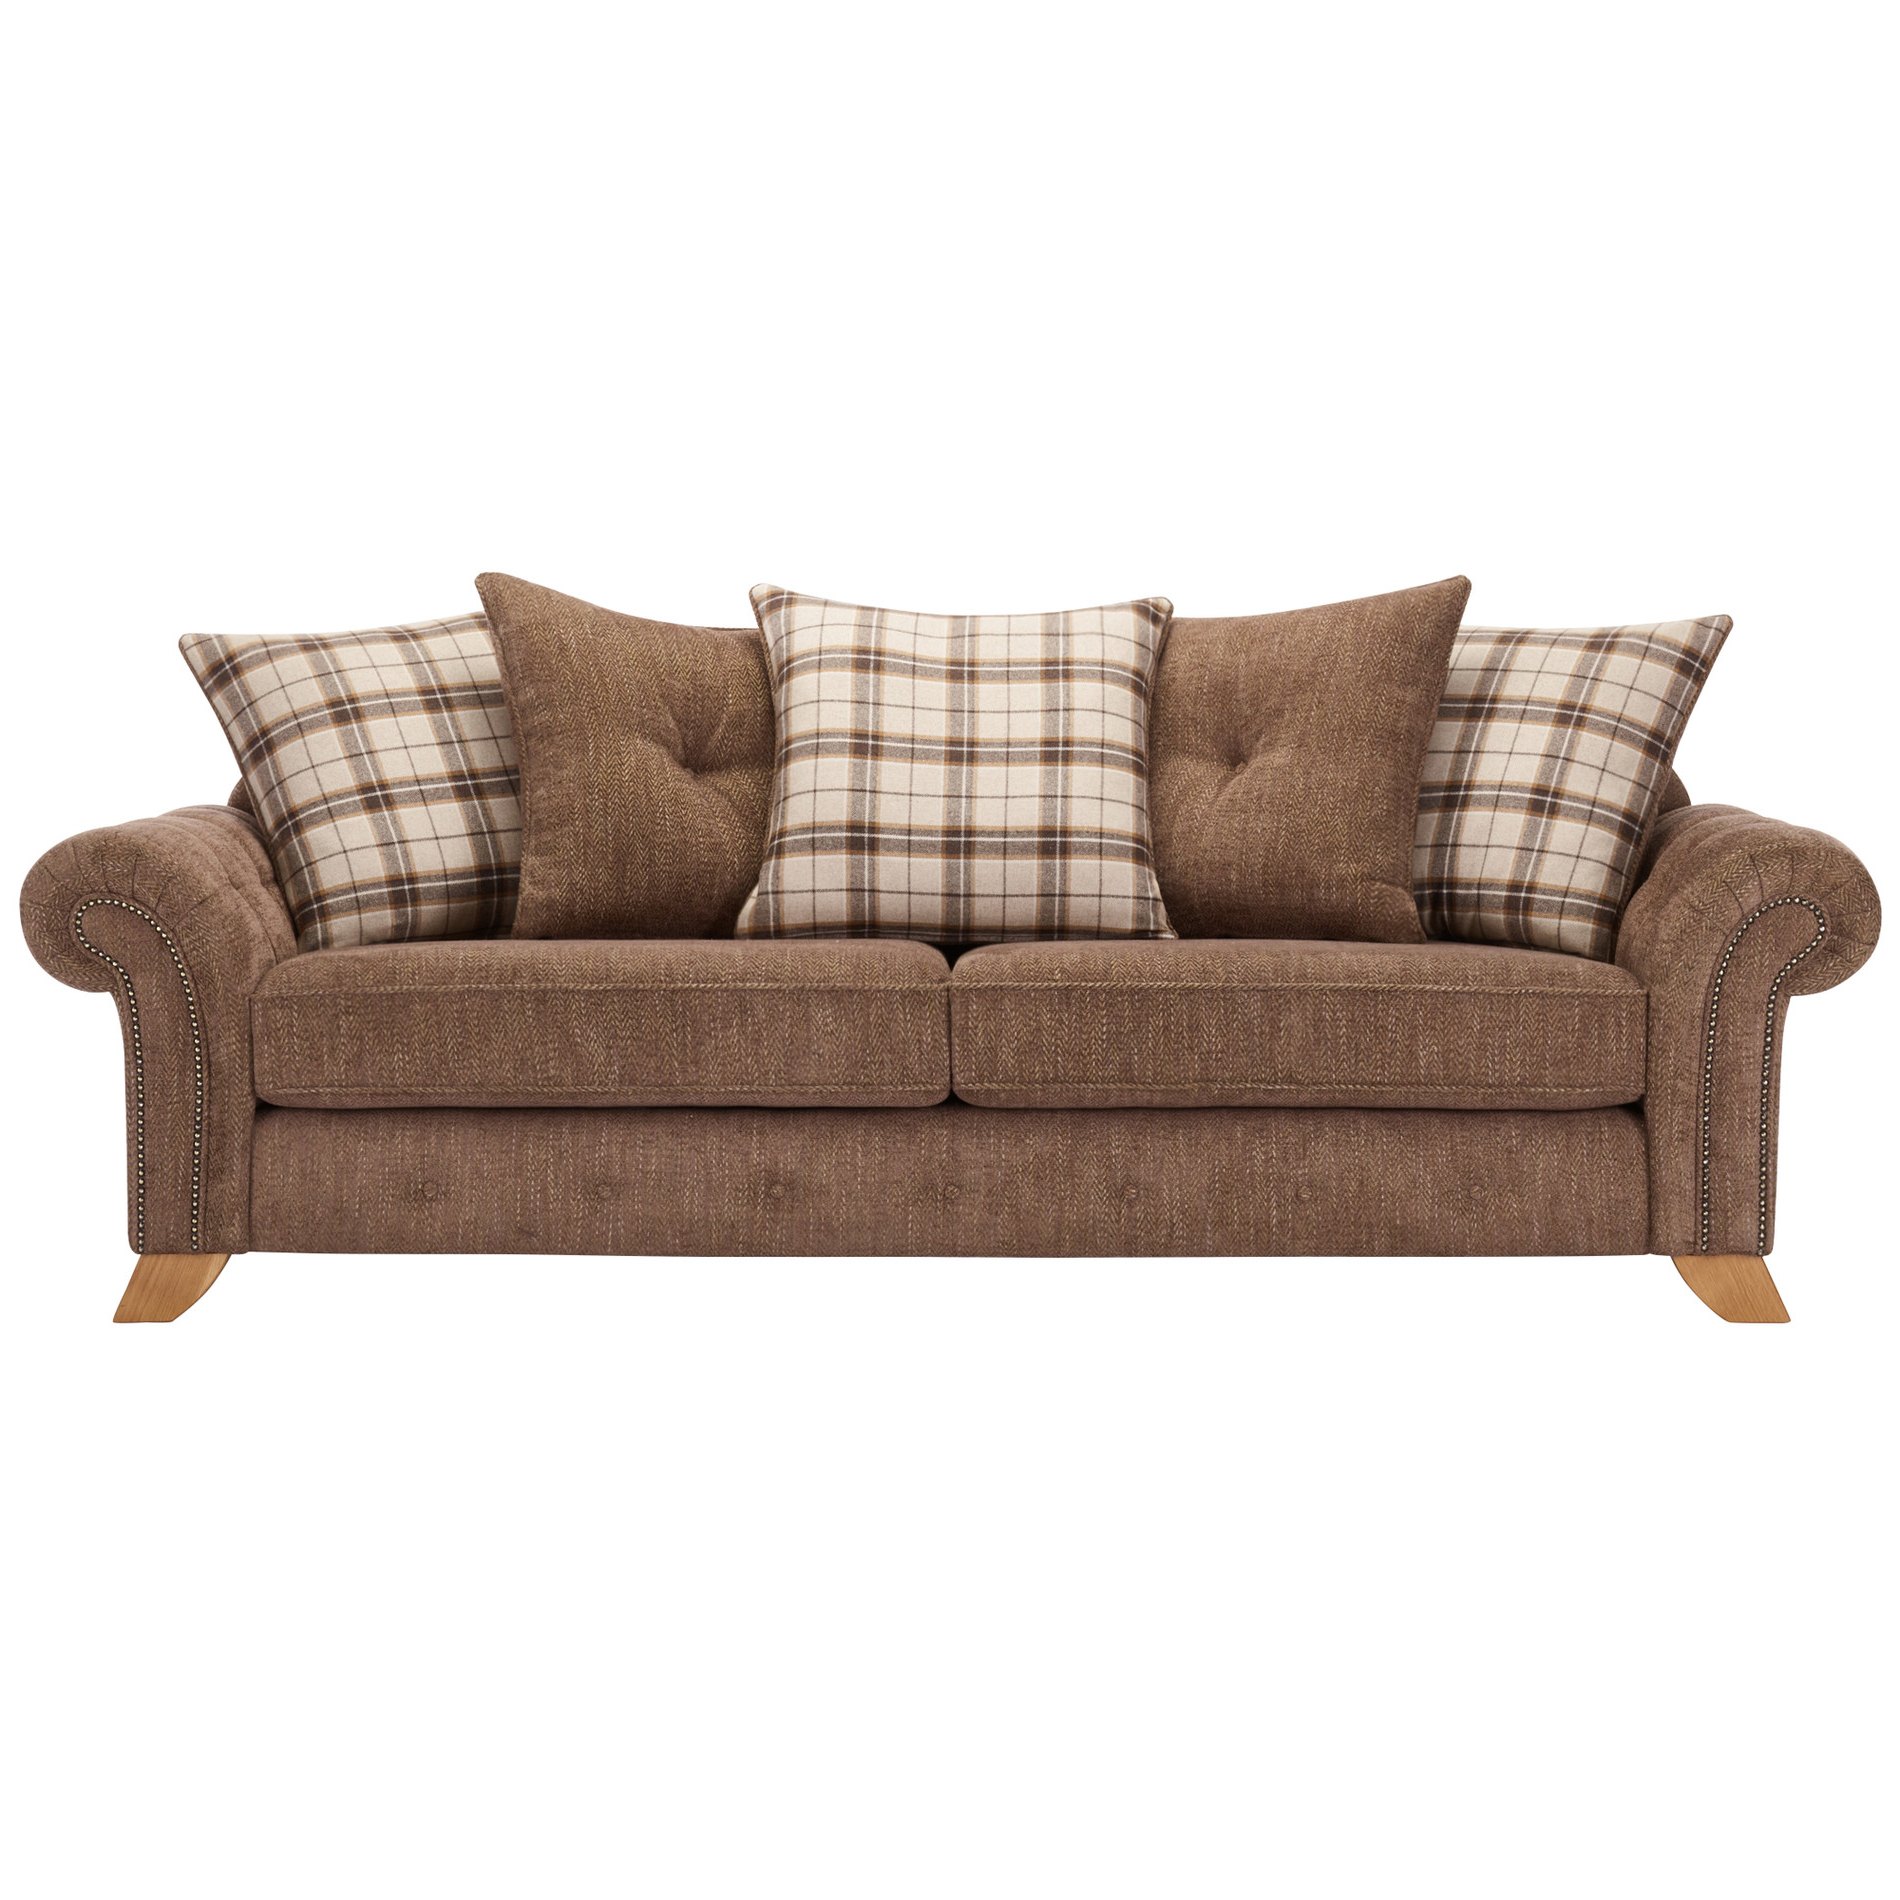 Well Liked Lyvia Pillowback Sofa Sectional Sofas Within Montana 4 Seater Sofa With Pillow Back In Brown Fabric (View 7 of 25)